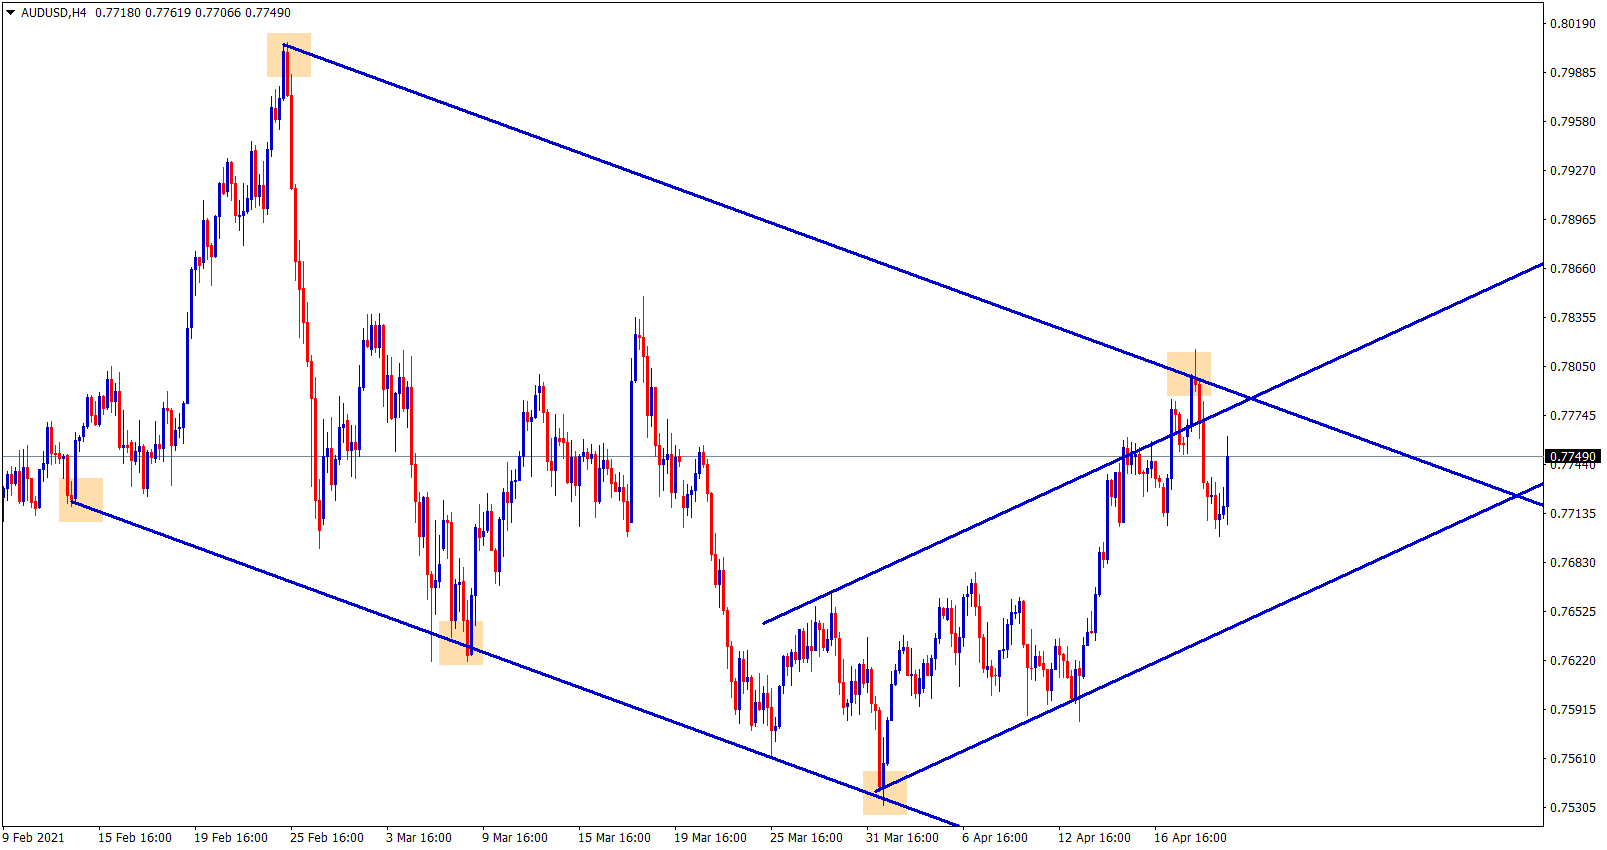 AUDUSD is moving in a channel ranges